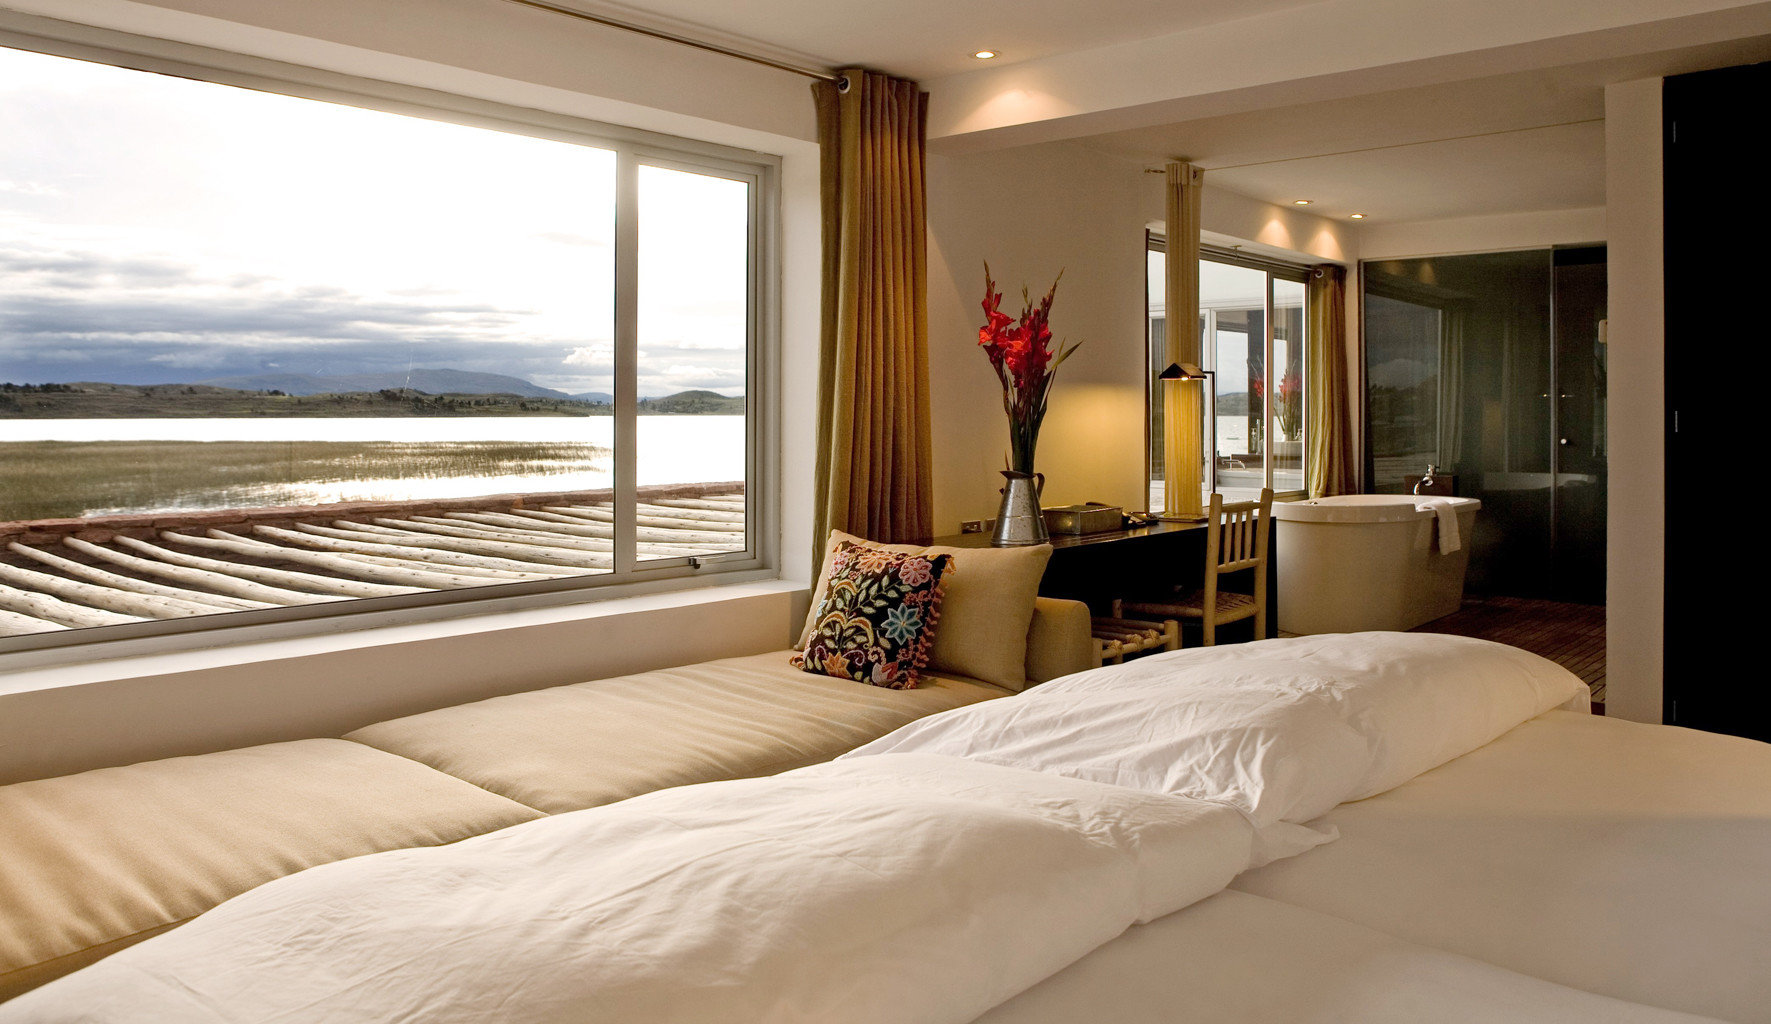 Bedroom Lodge Modern Scenic views Waterfront property Suite white pillow home bed sheet cottage bed frame living room Villa condominium big bedclothes